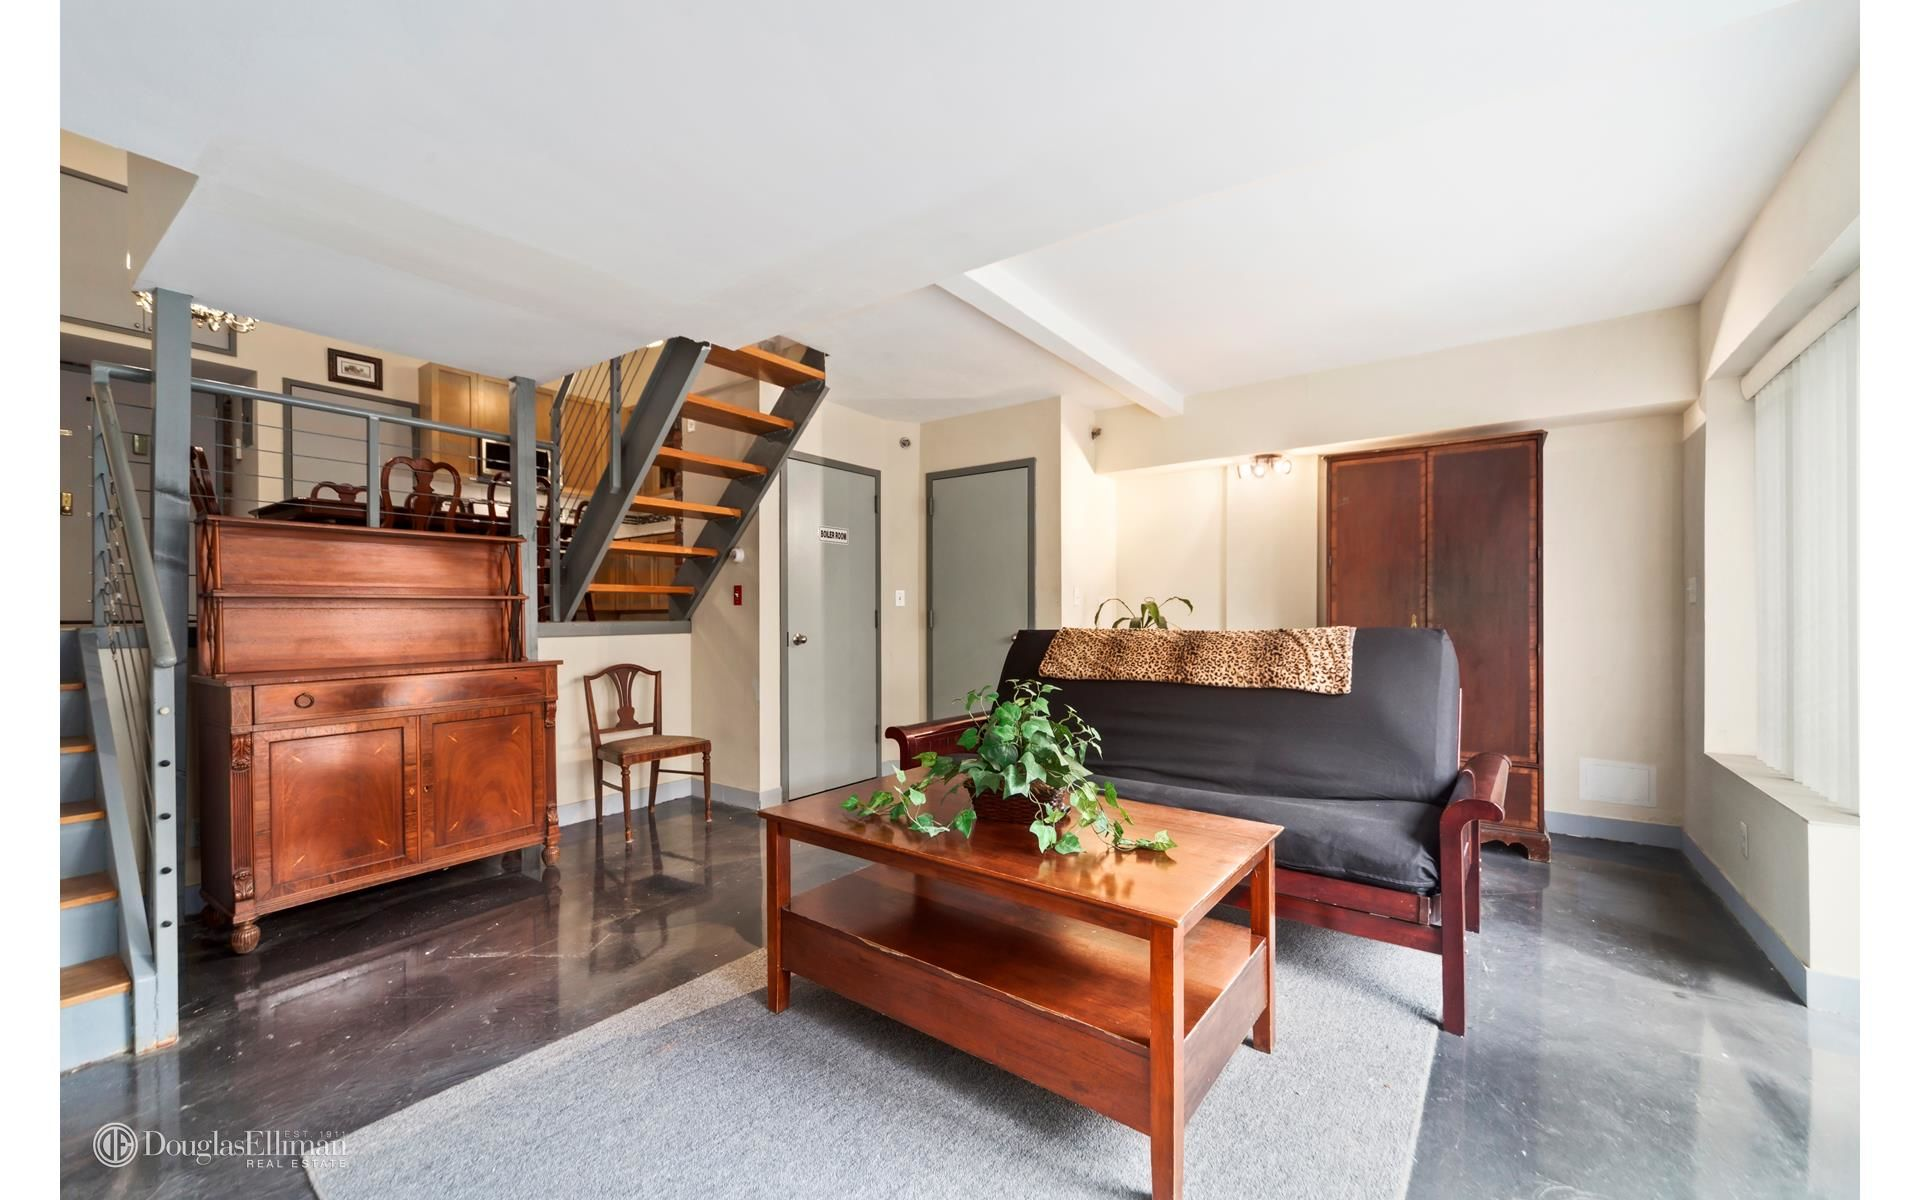 37 Carroll St Photo 3 - ELLIMAN-2614114